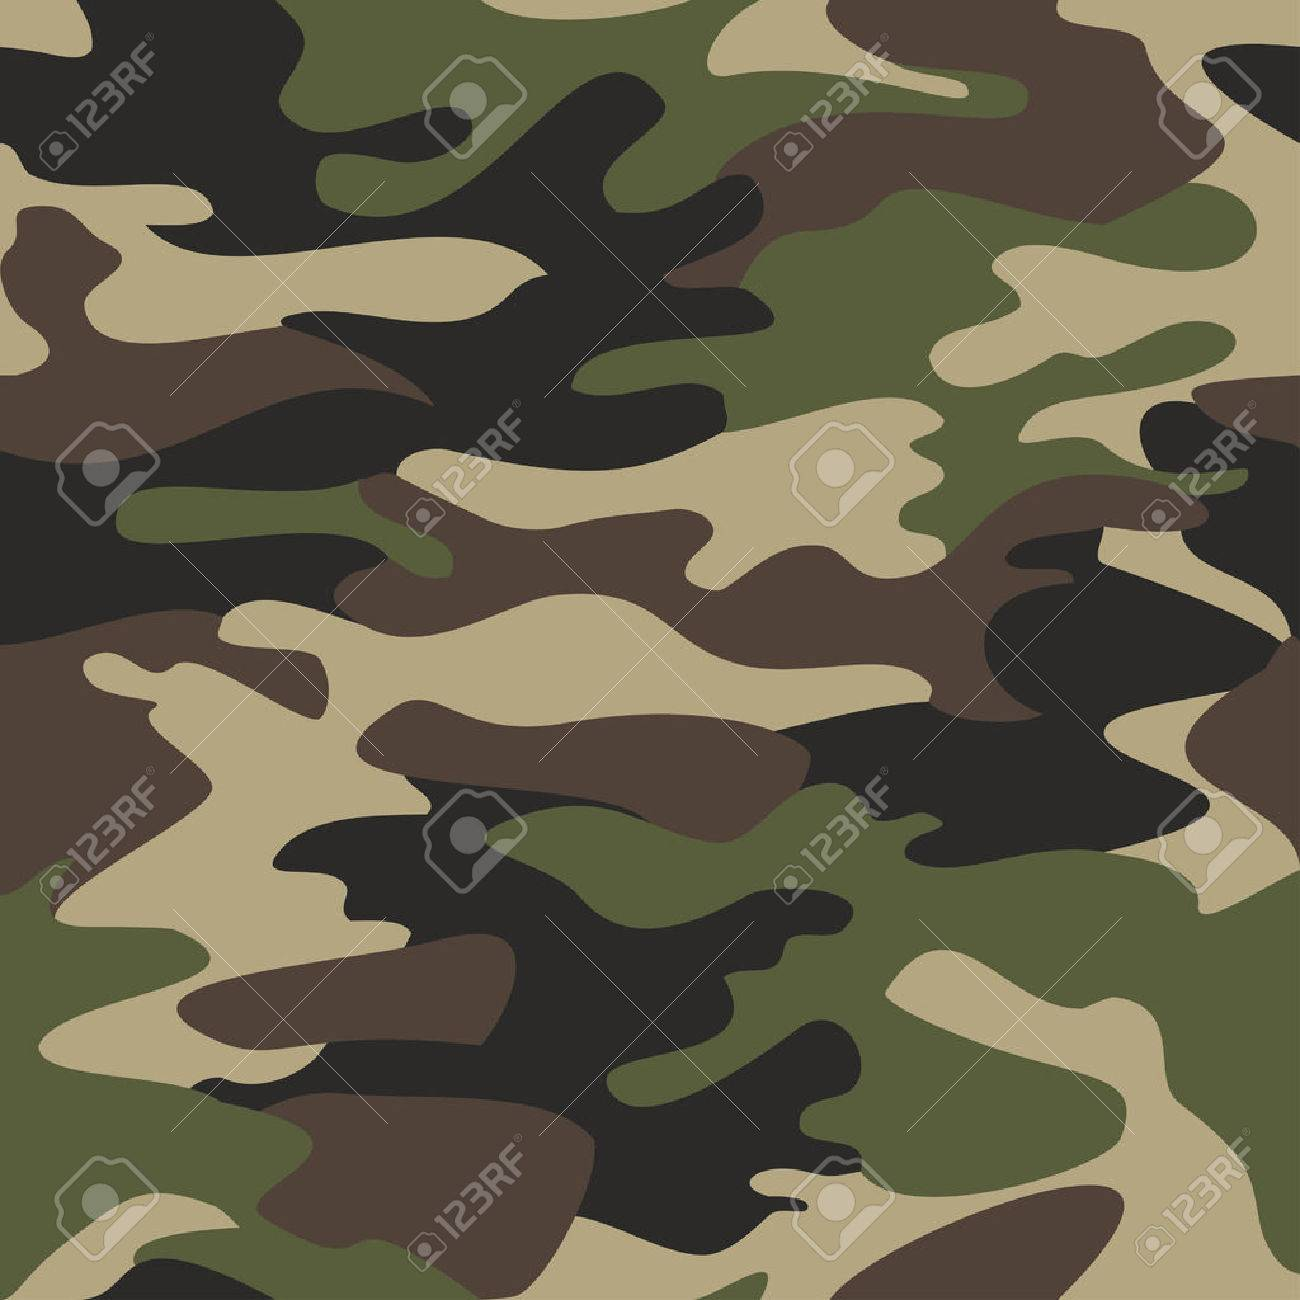 Camouflage Images \u0026 Stock Pictures. Royalty Free Camouflage Photos ...